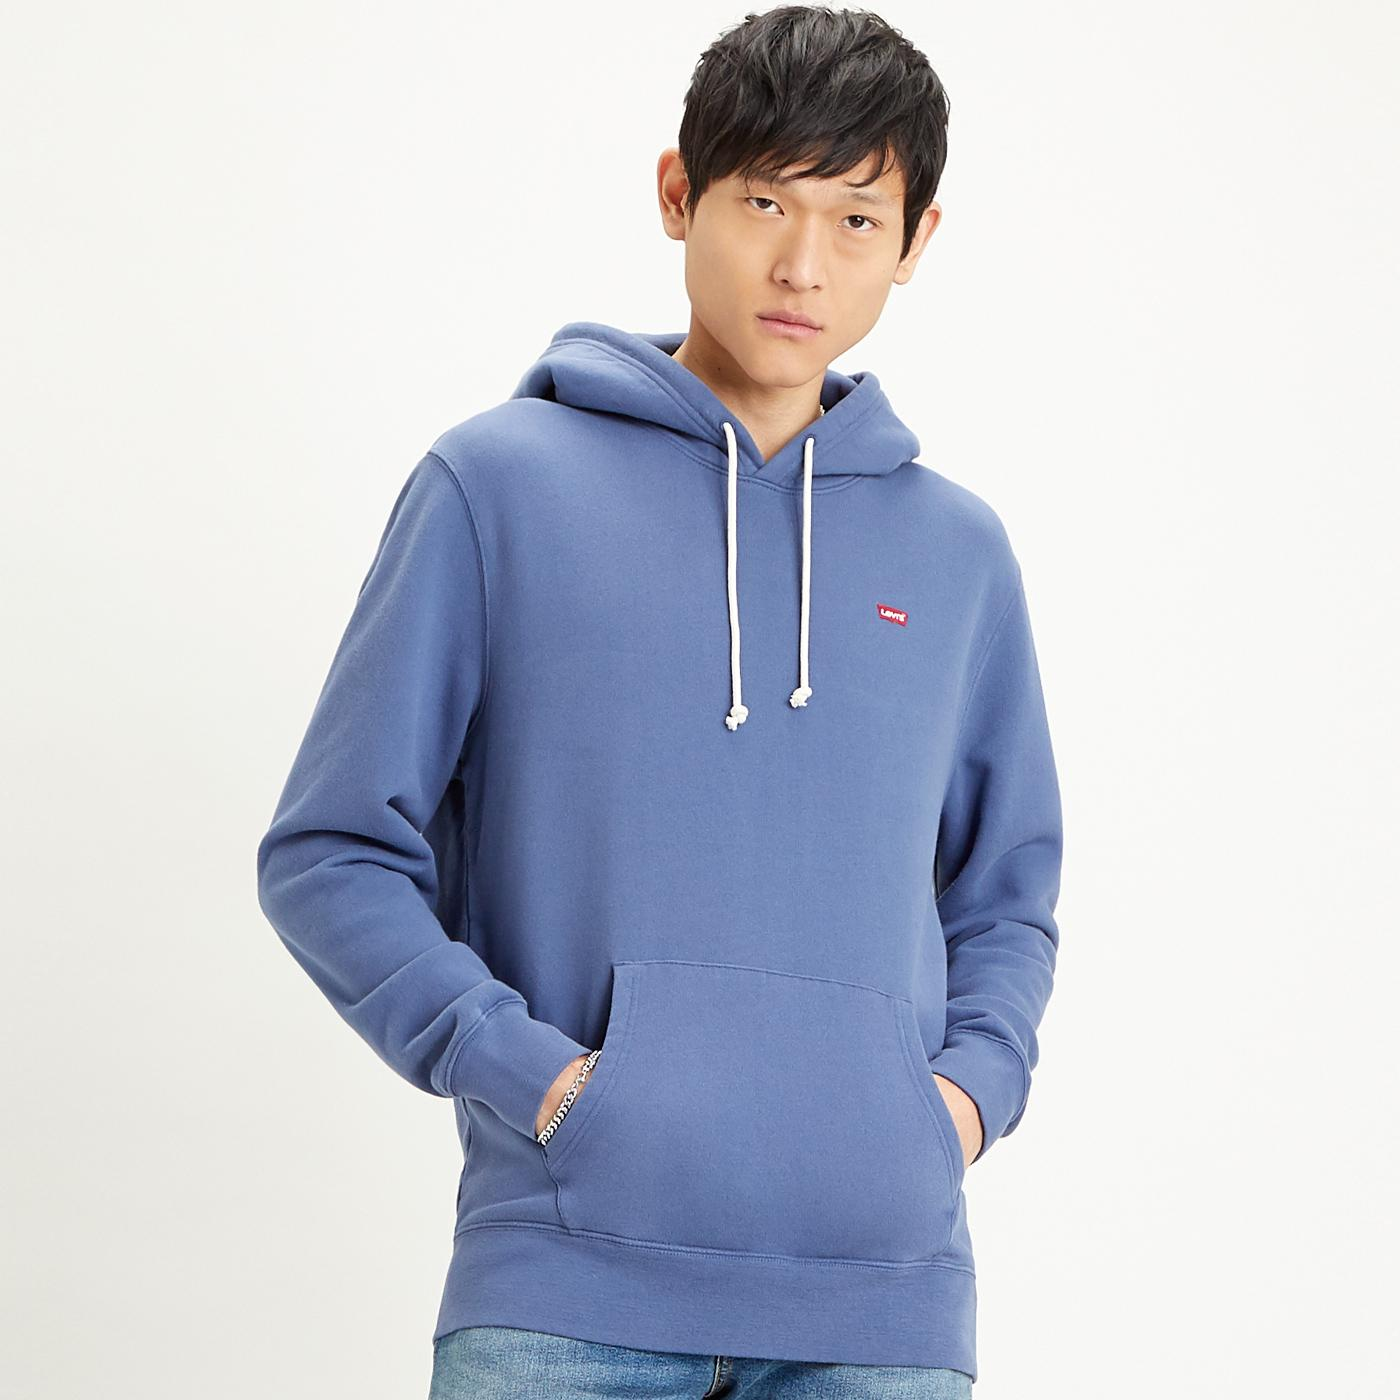 LEVI'S Original Men's Retro Hooded Sweatshirt (BI)